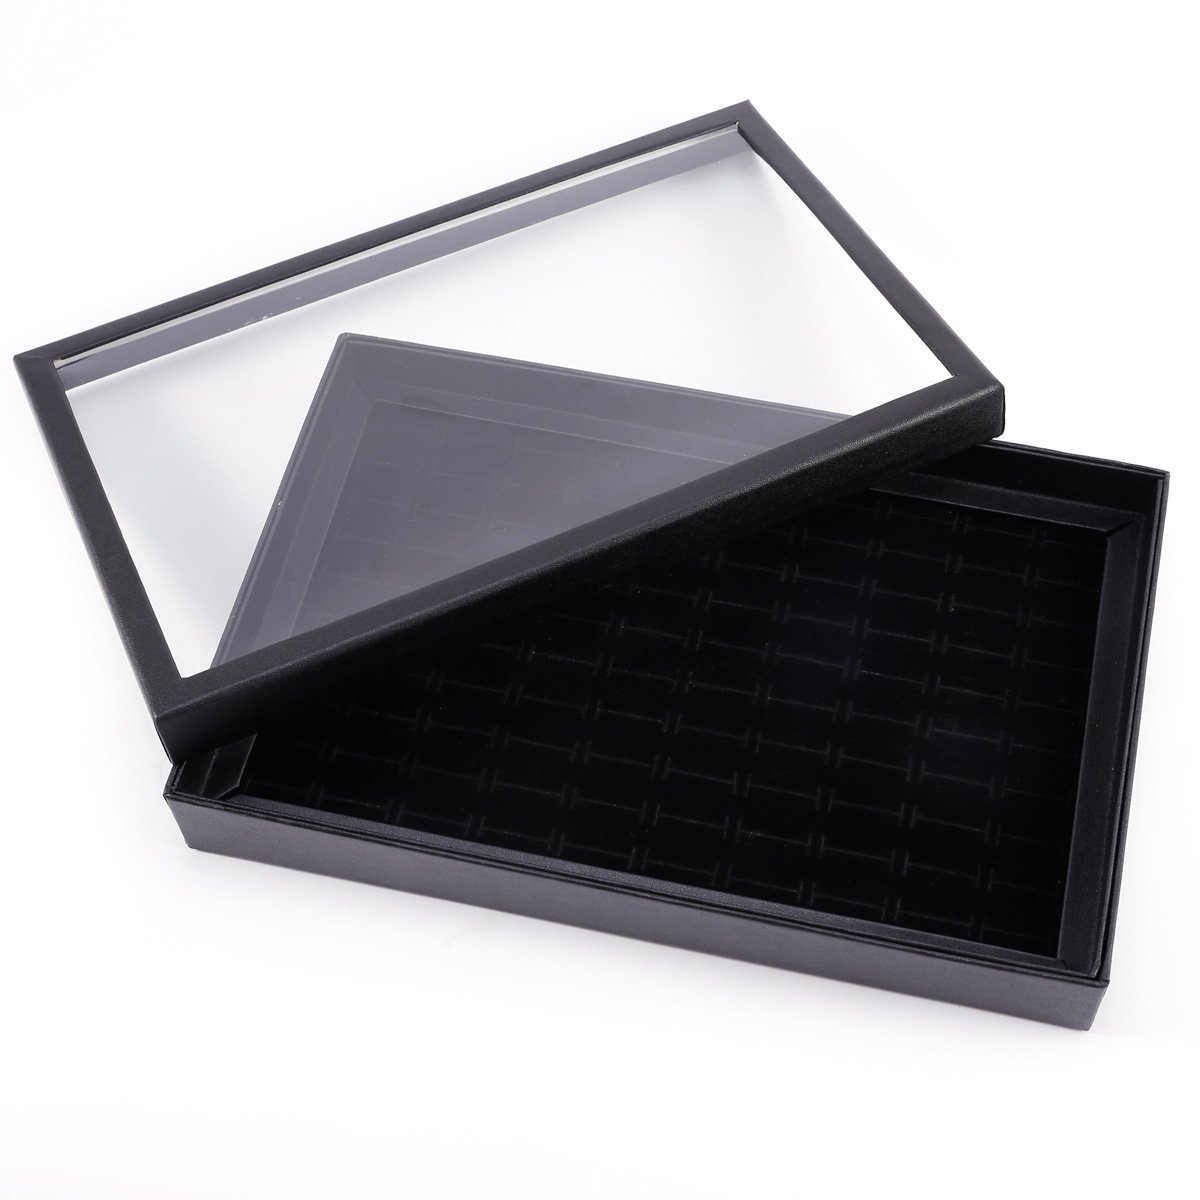 Velvet Jewelry Display Ring Earring Cases & Displays 100 Slots Cover Showcase 29x19x4cm